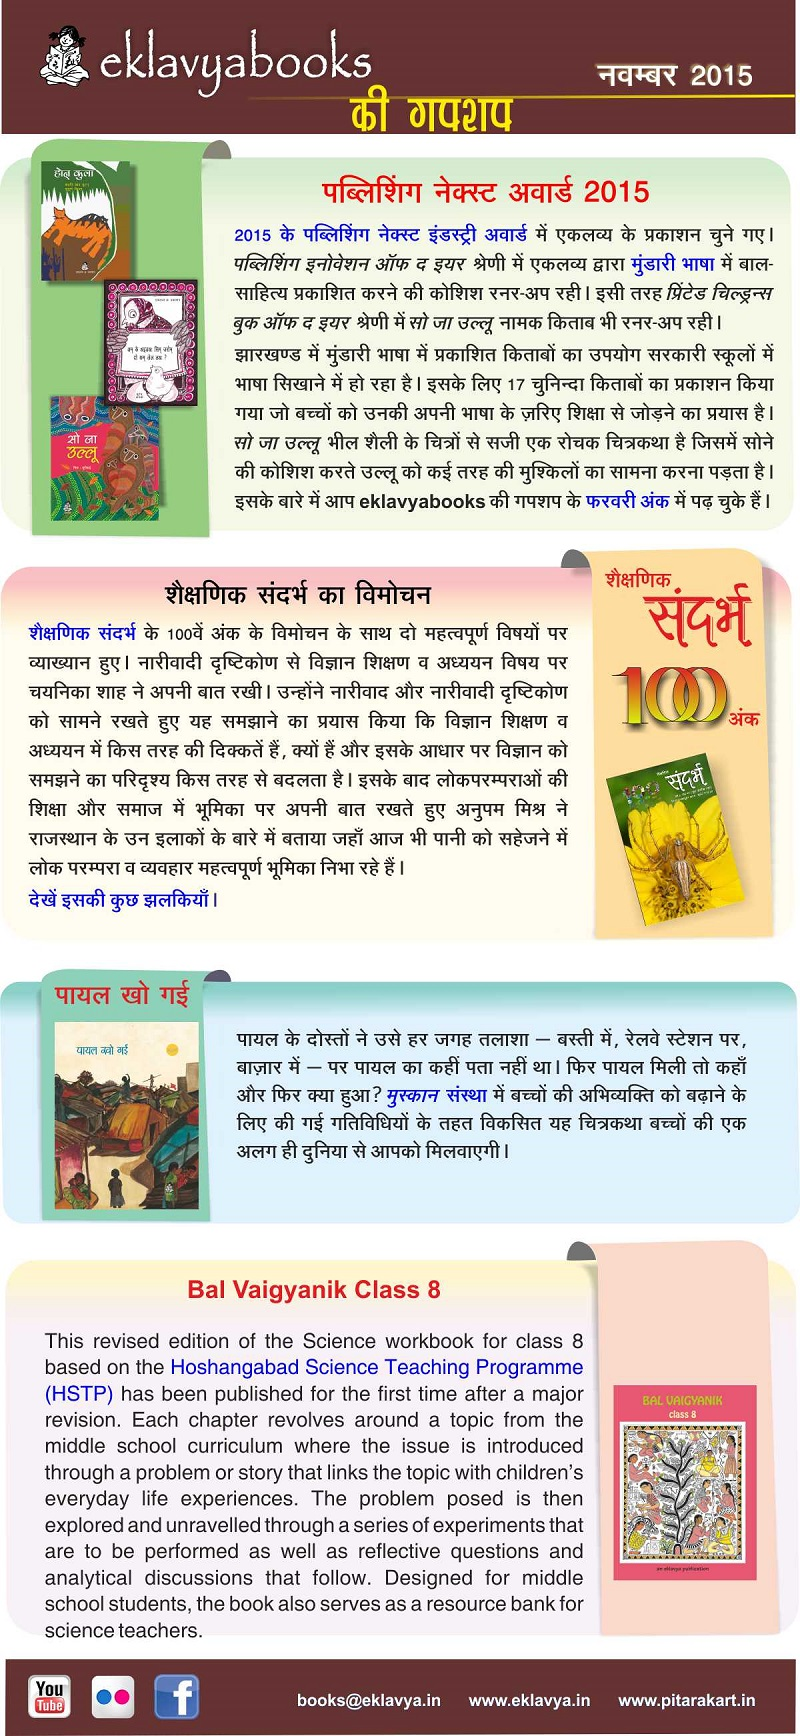 eklavyabooks ki gupshup - November 2015. Enable image for viewing newsletter